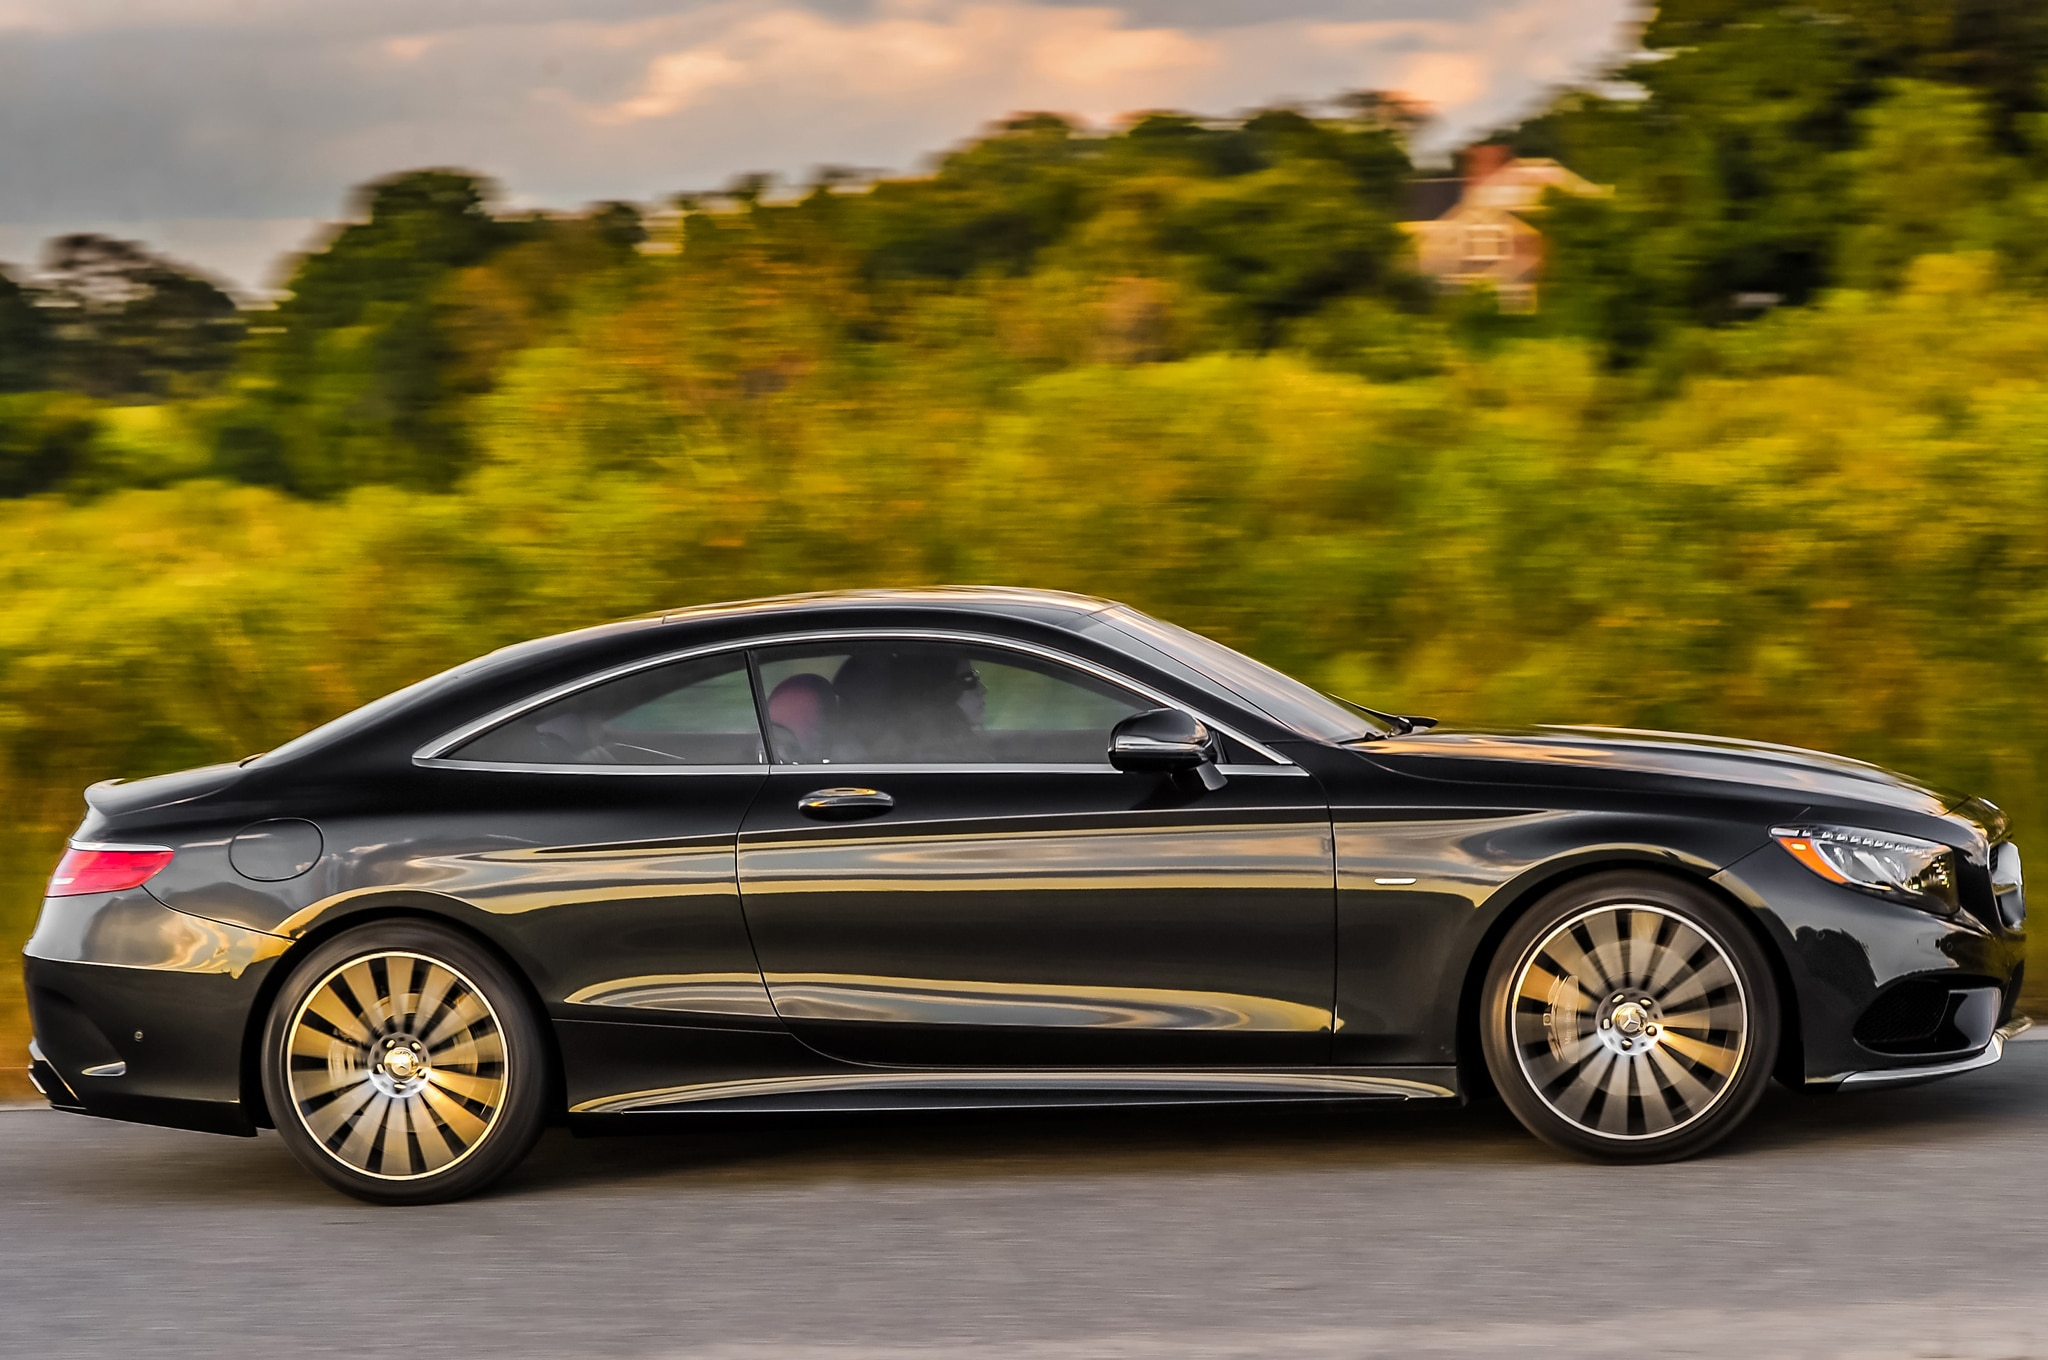 2015 mercedes benz s550 4matic coupe review for Mercedes benz s550 reviews